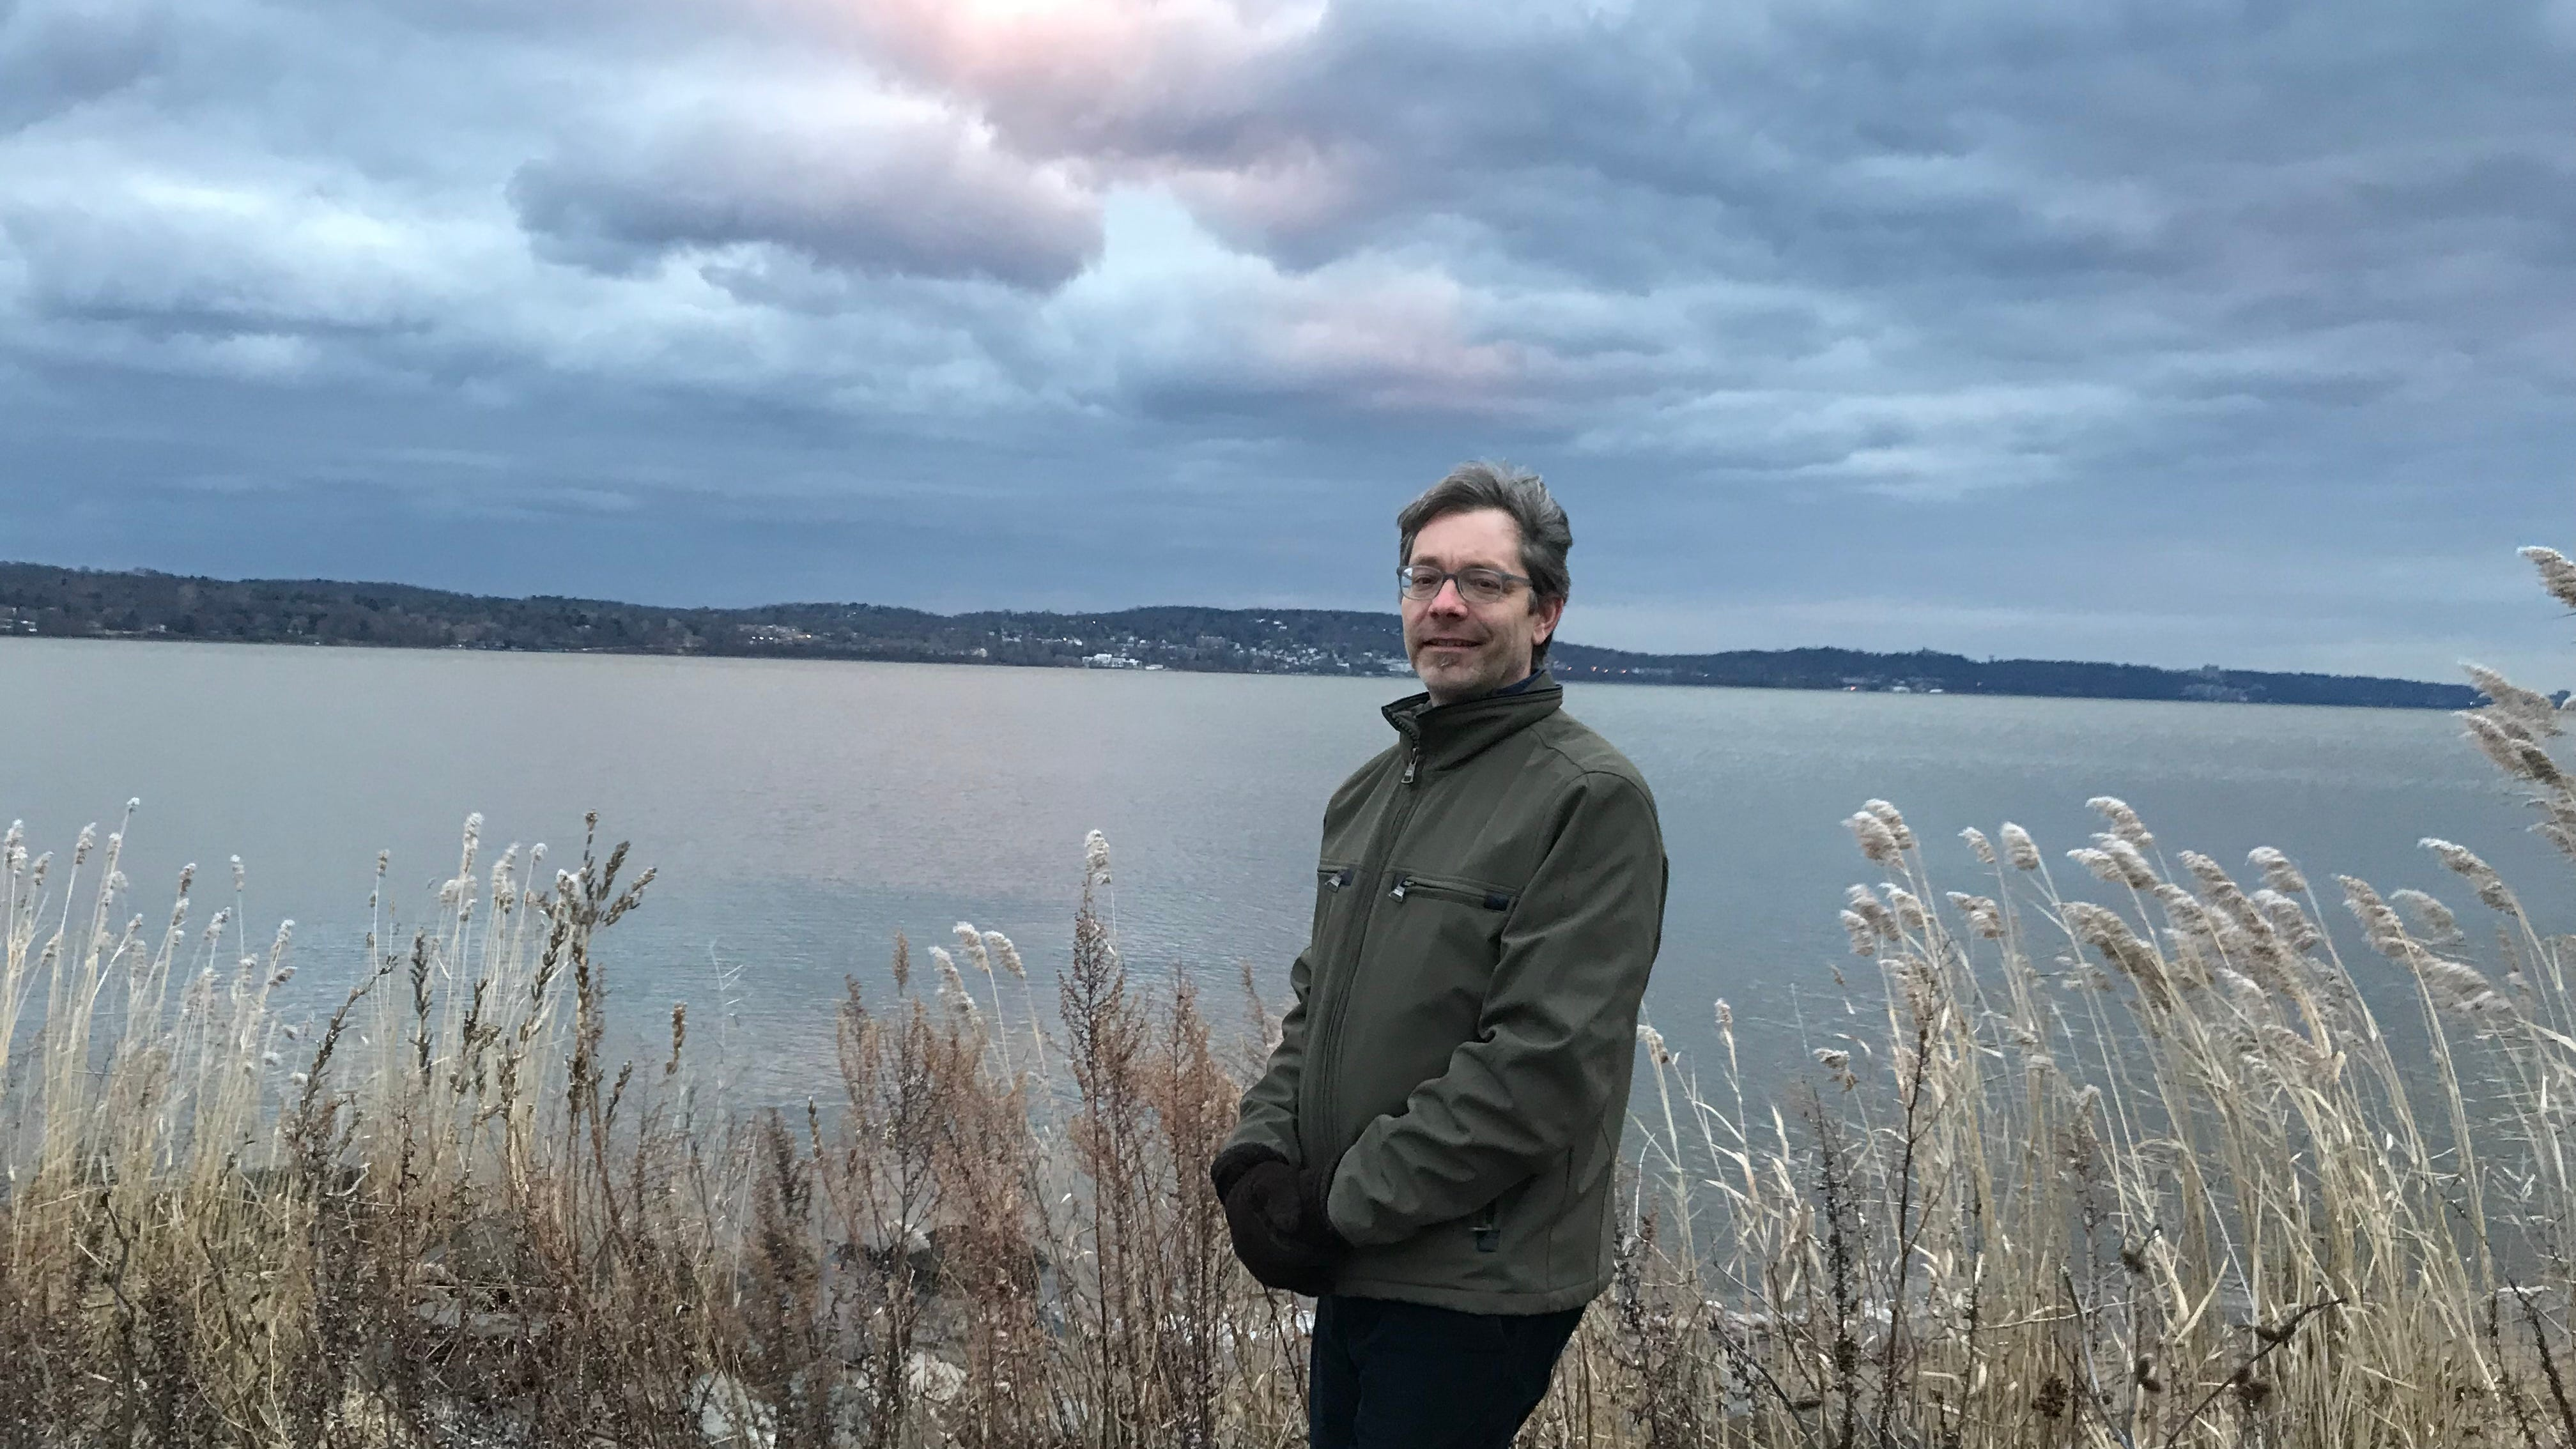 What gets stirred up along with Hudson River sediment? Human poop, study shows